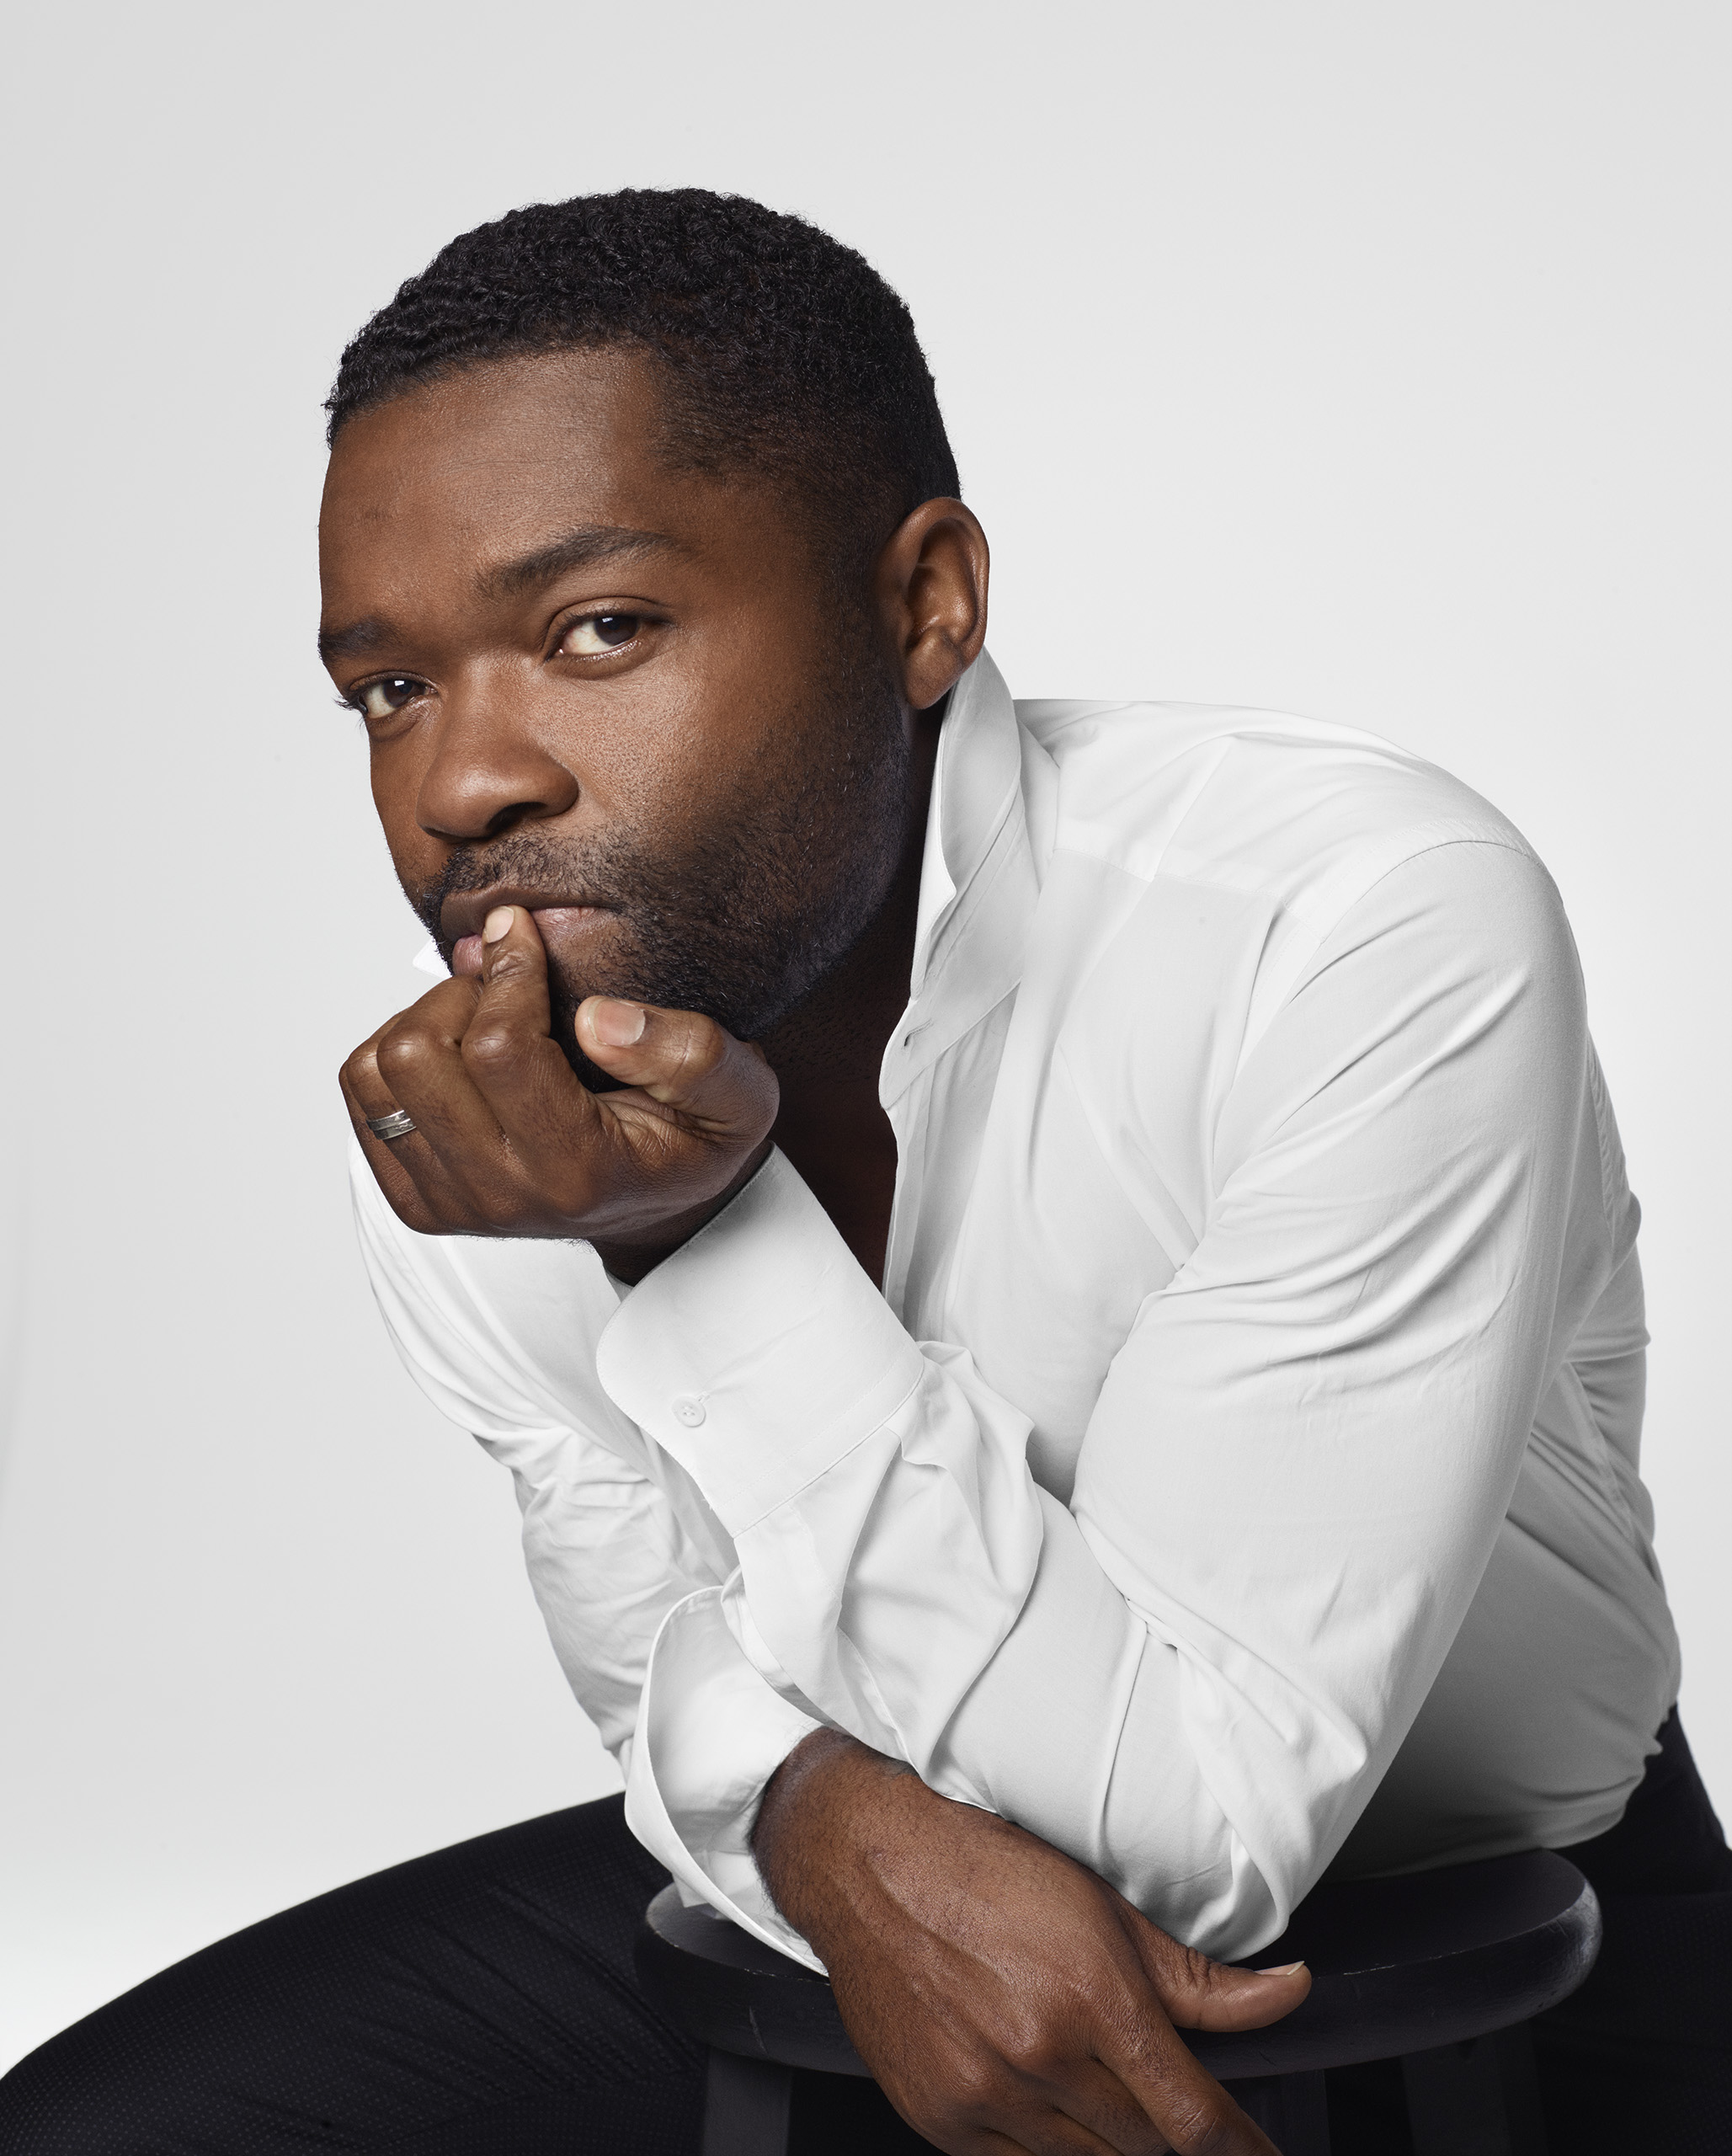 David Oyelowo. From  The Best of Culture 2014.  Dec. 22 / Dec. 29, 2014 issue.